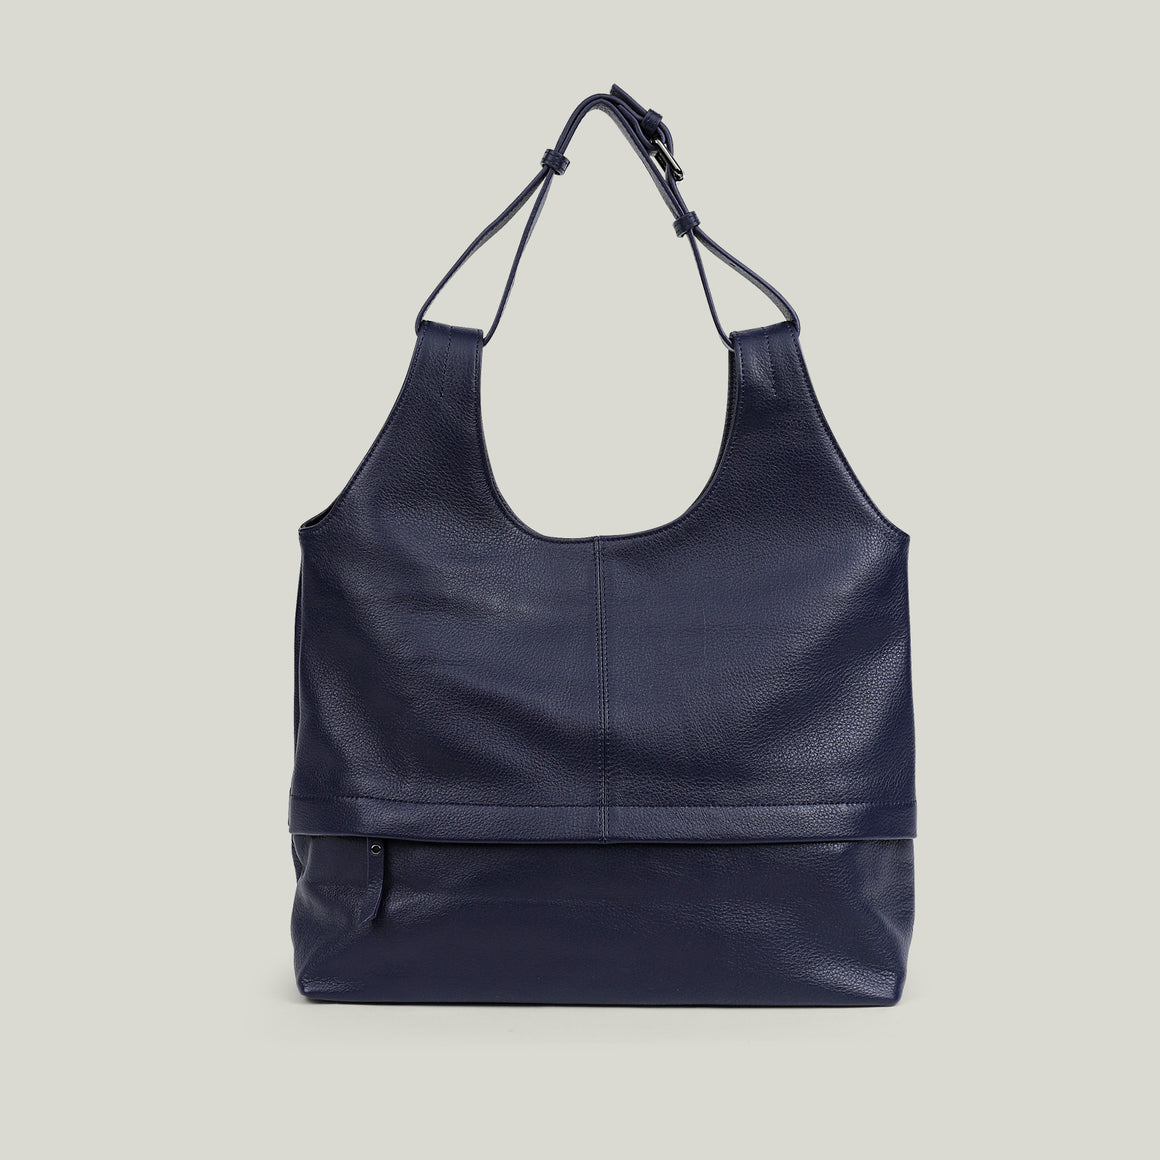 Leather Hobo Bag, Sober Simplicity navy blue - Dminimis